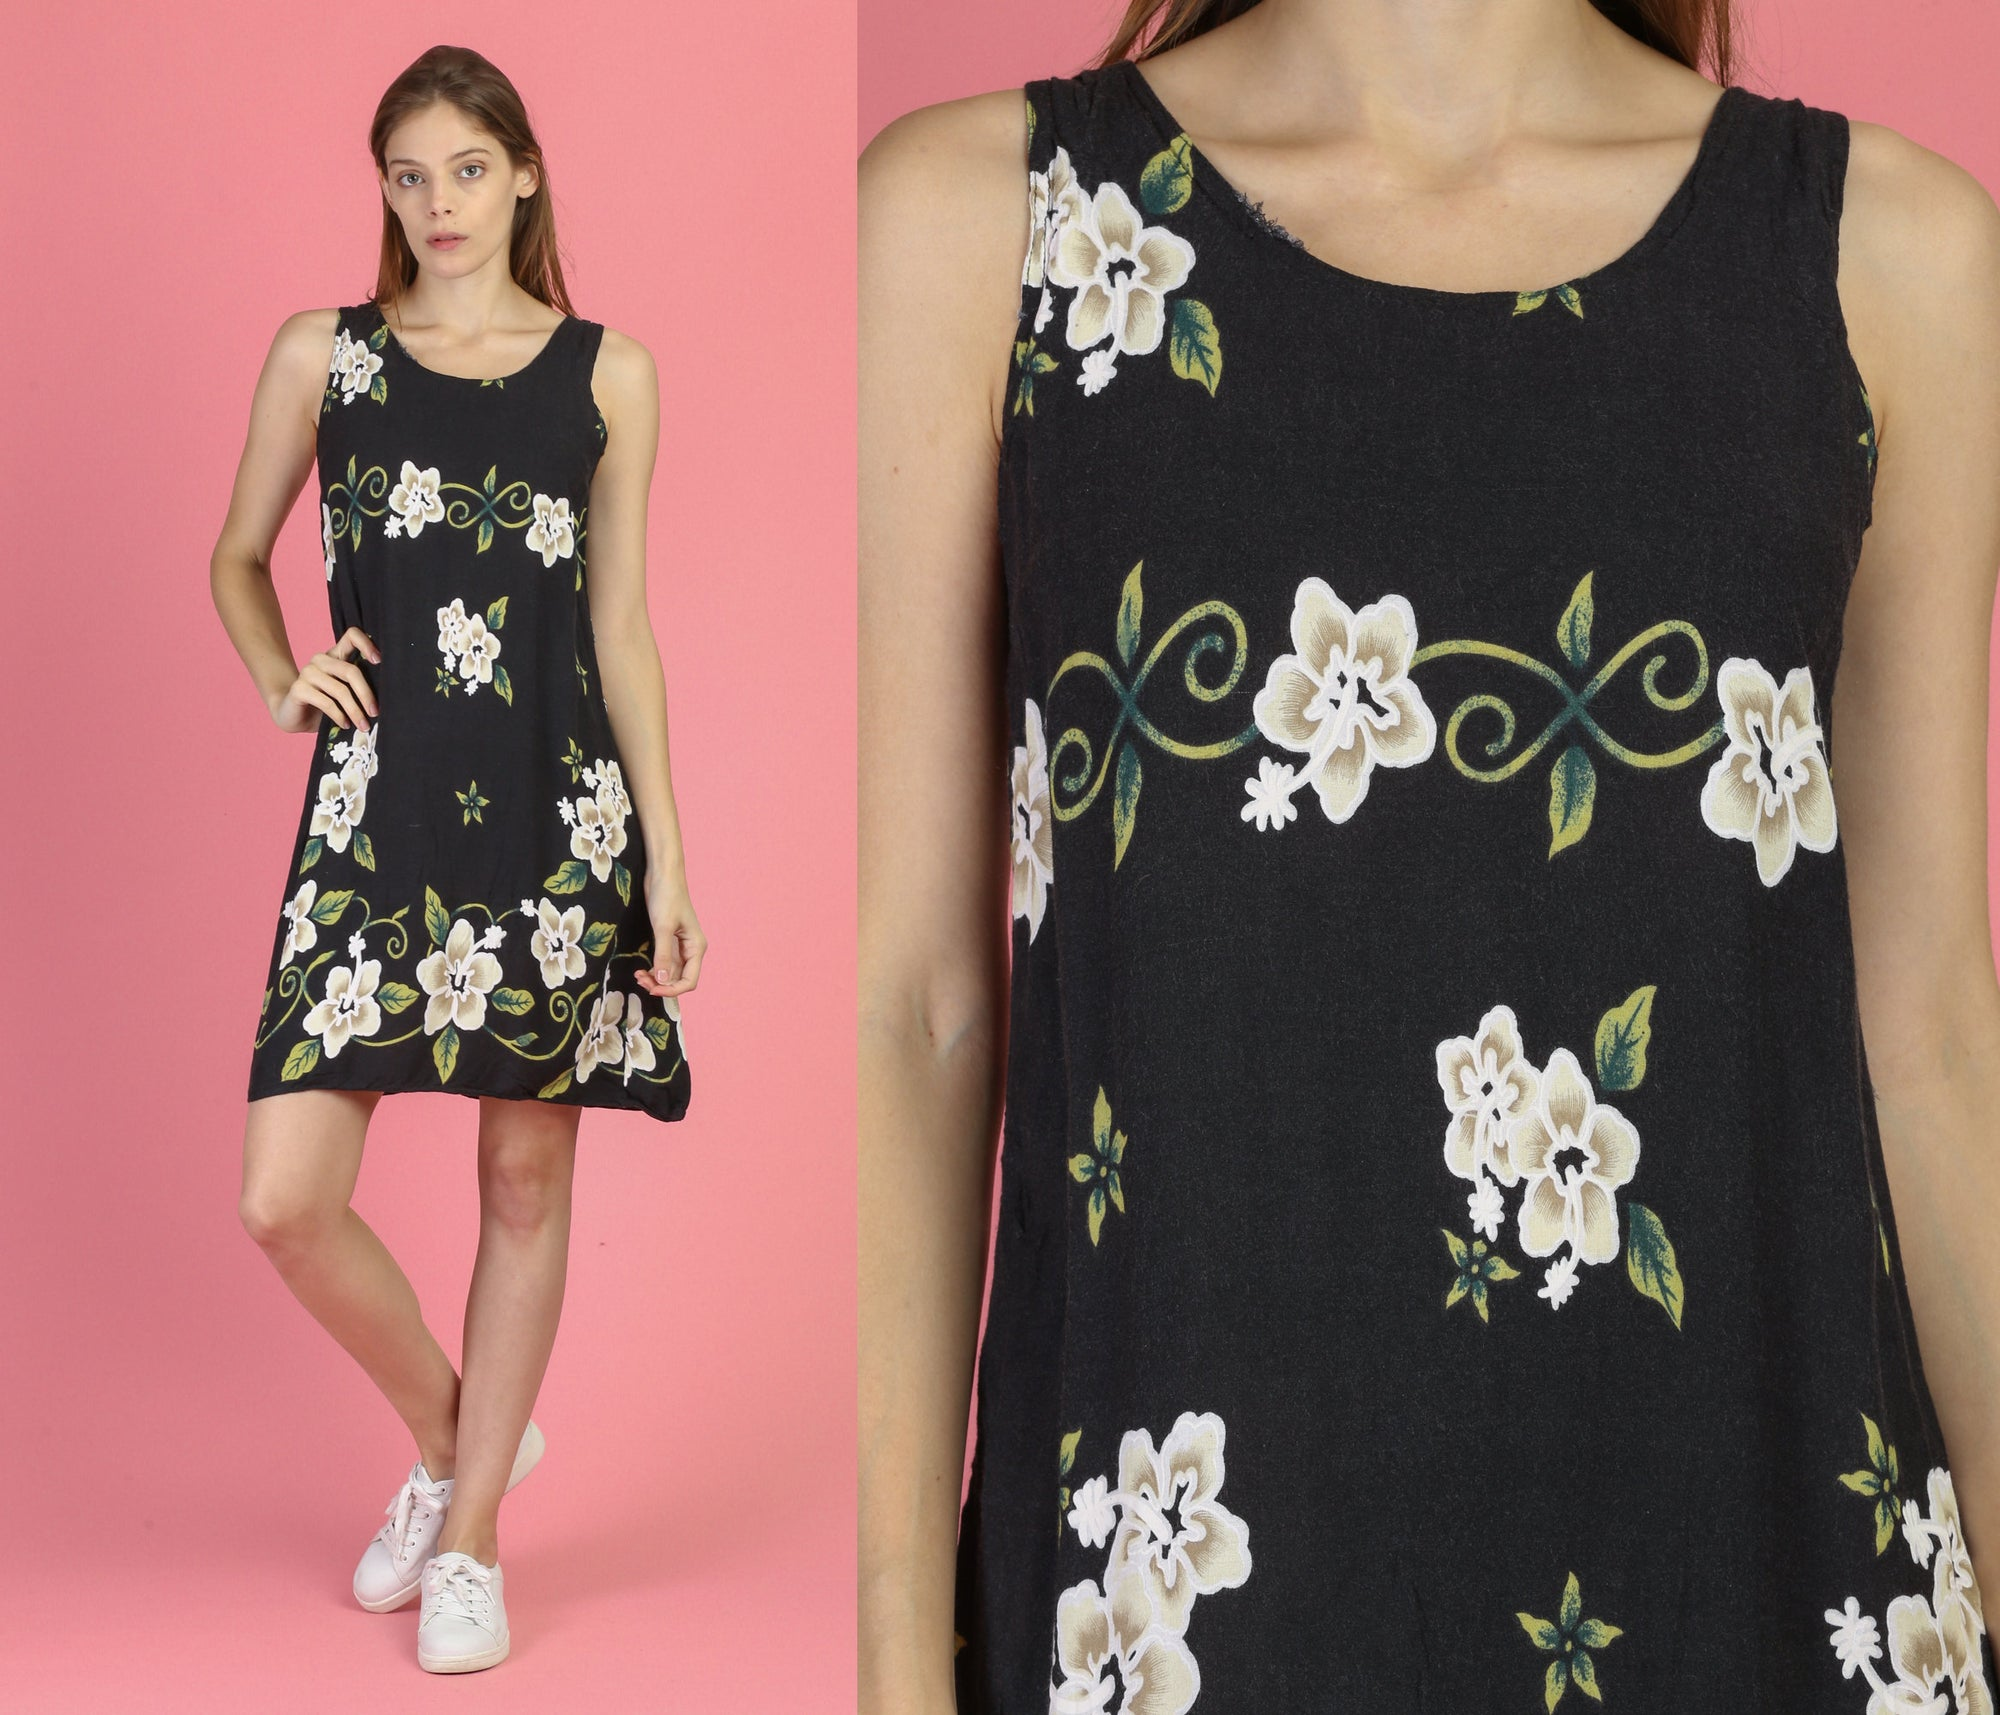 90s Black Floral Mini Dress - Small